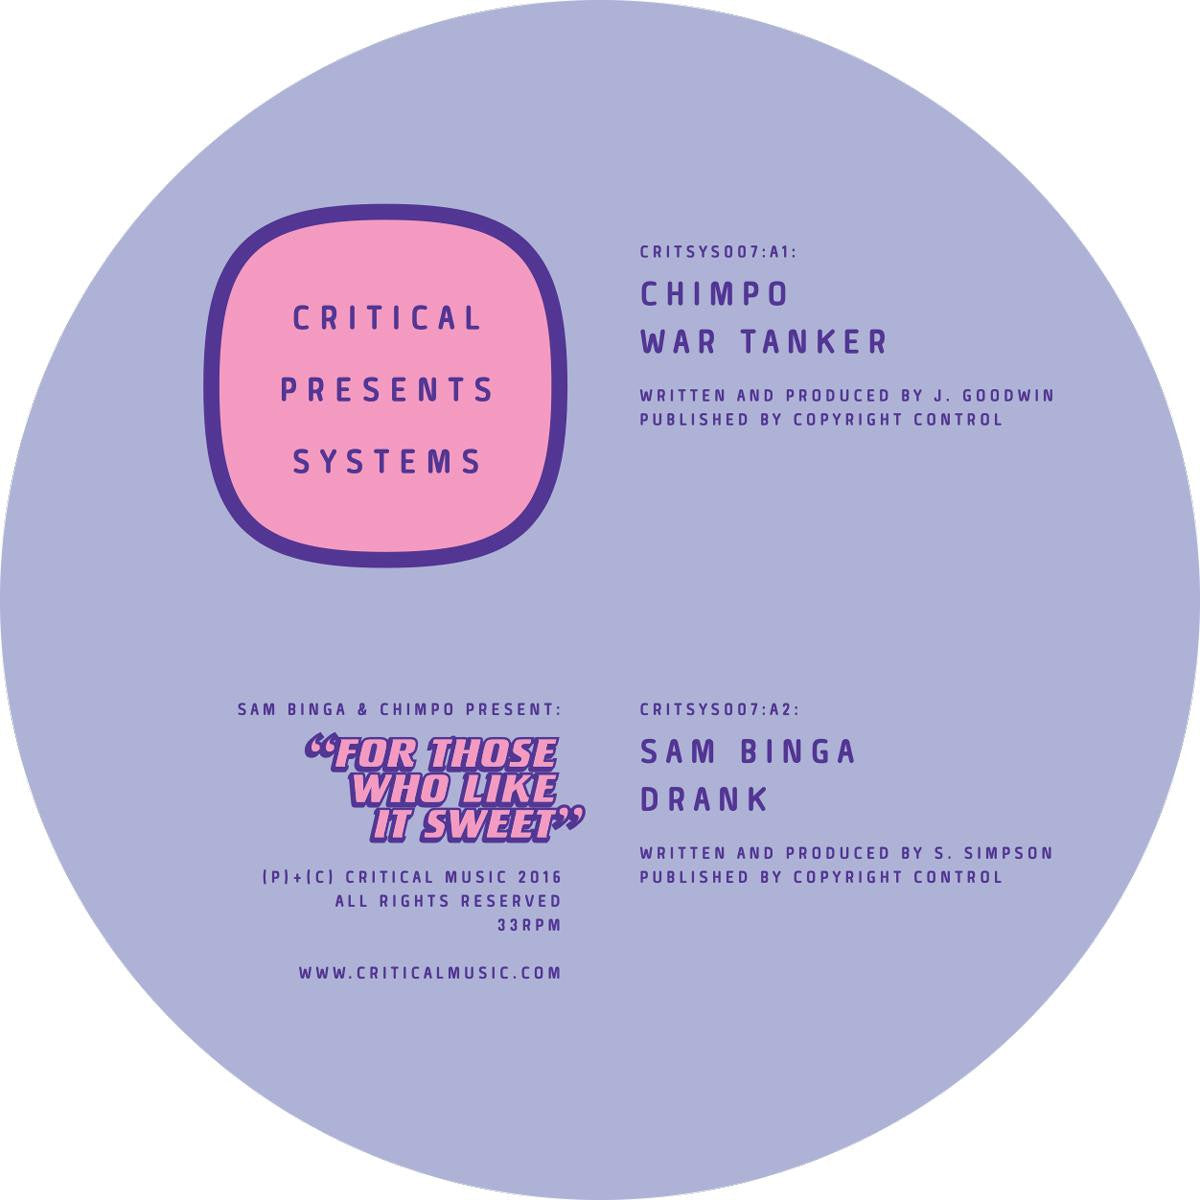 Sam Binga & Chimpo - For Those Who Like It Sweet [w/ Download Card] , Vinyl - Critical Music, Unearthed Sounds